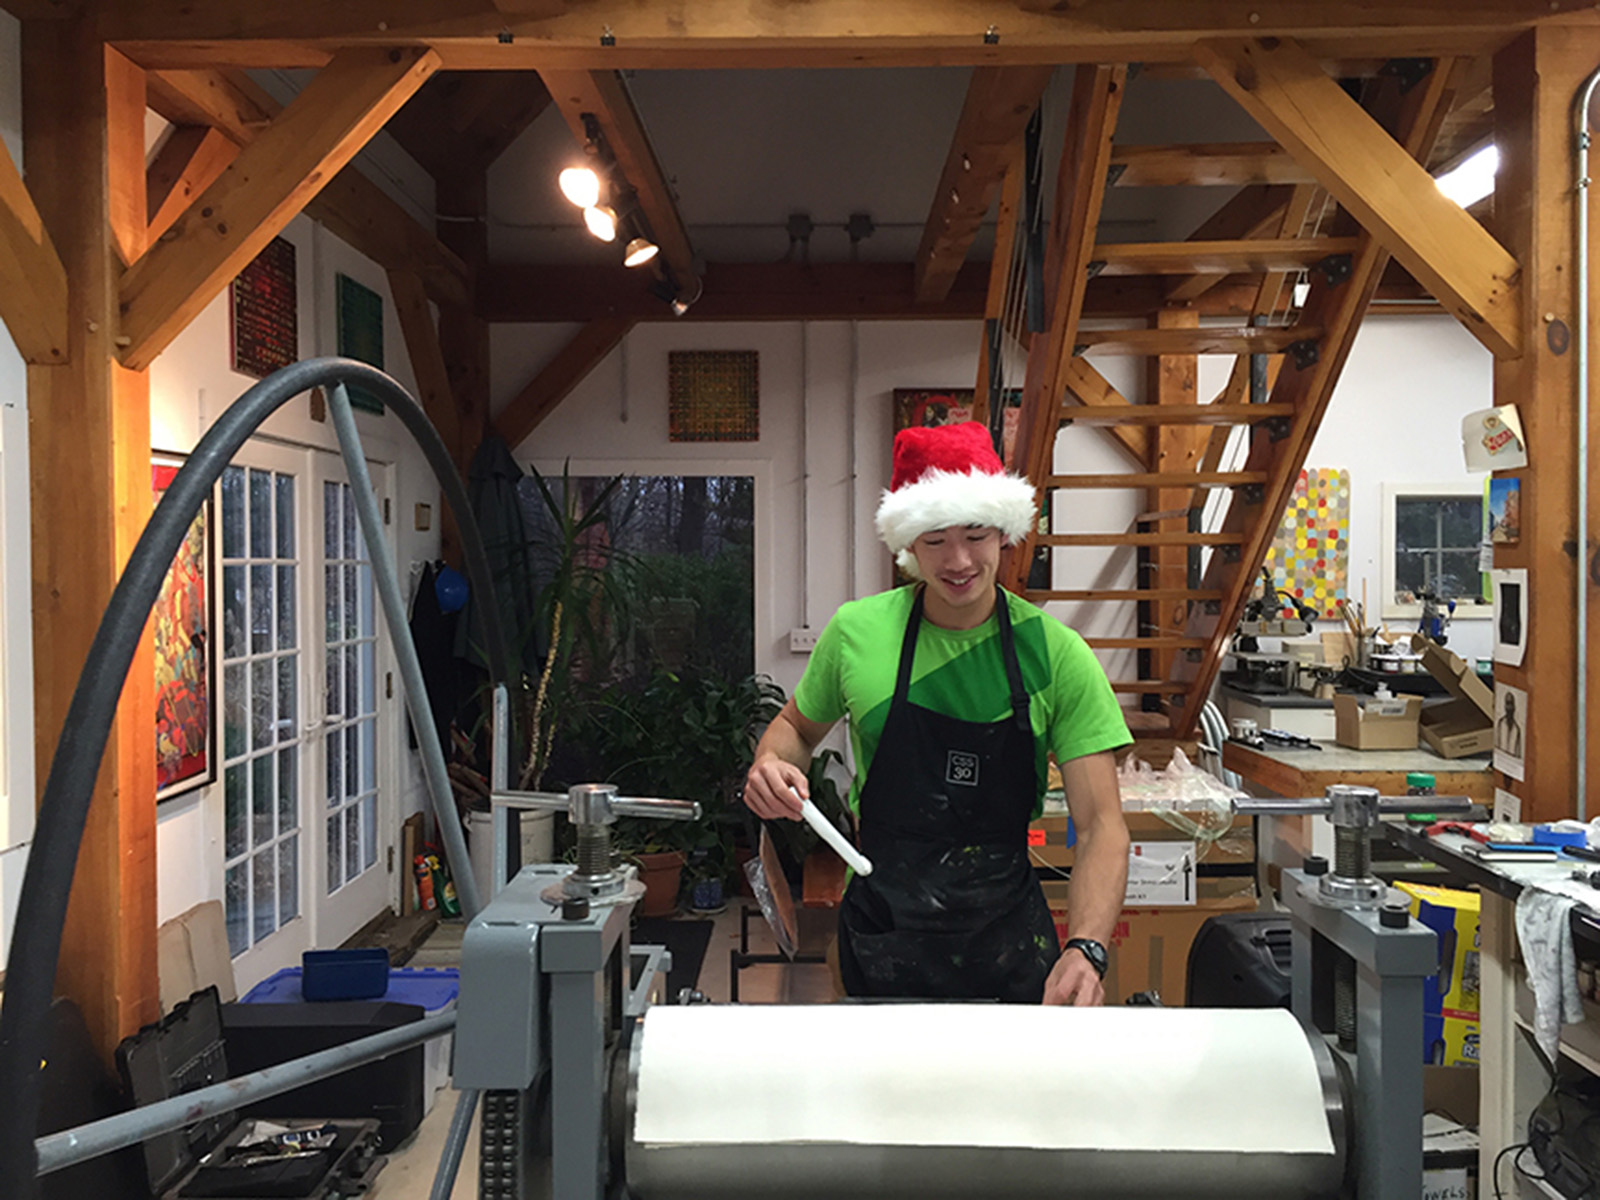 Work during the holidays: Ryder Stroud preps the press for printing one of the letters in the Matthew Carter  A-Z  portfolio project.